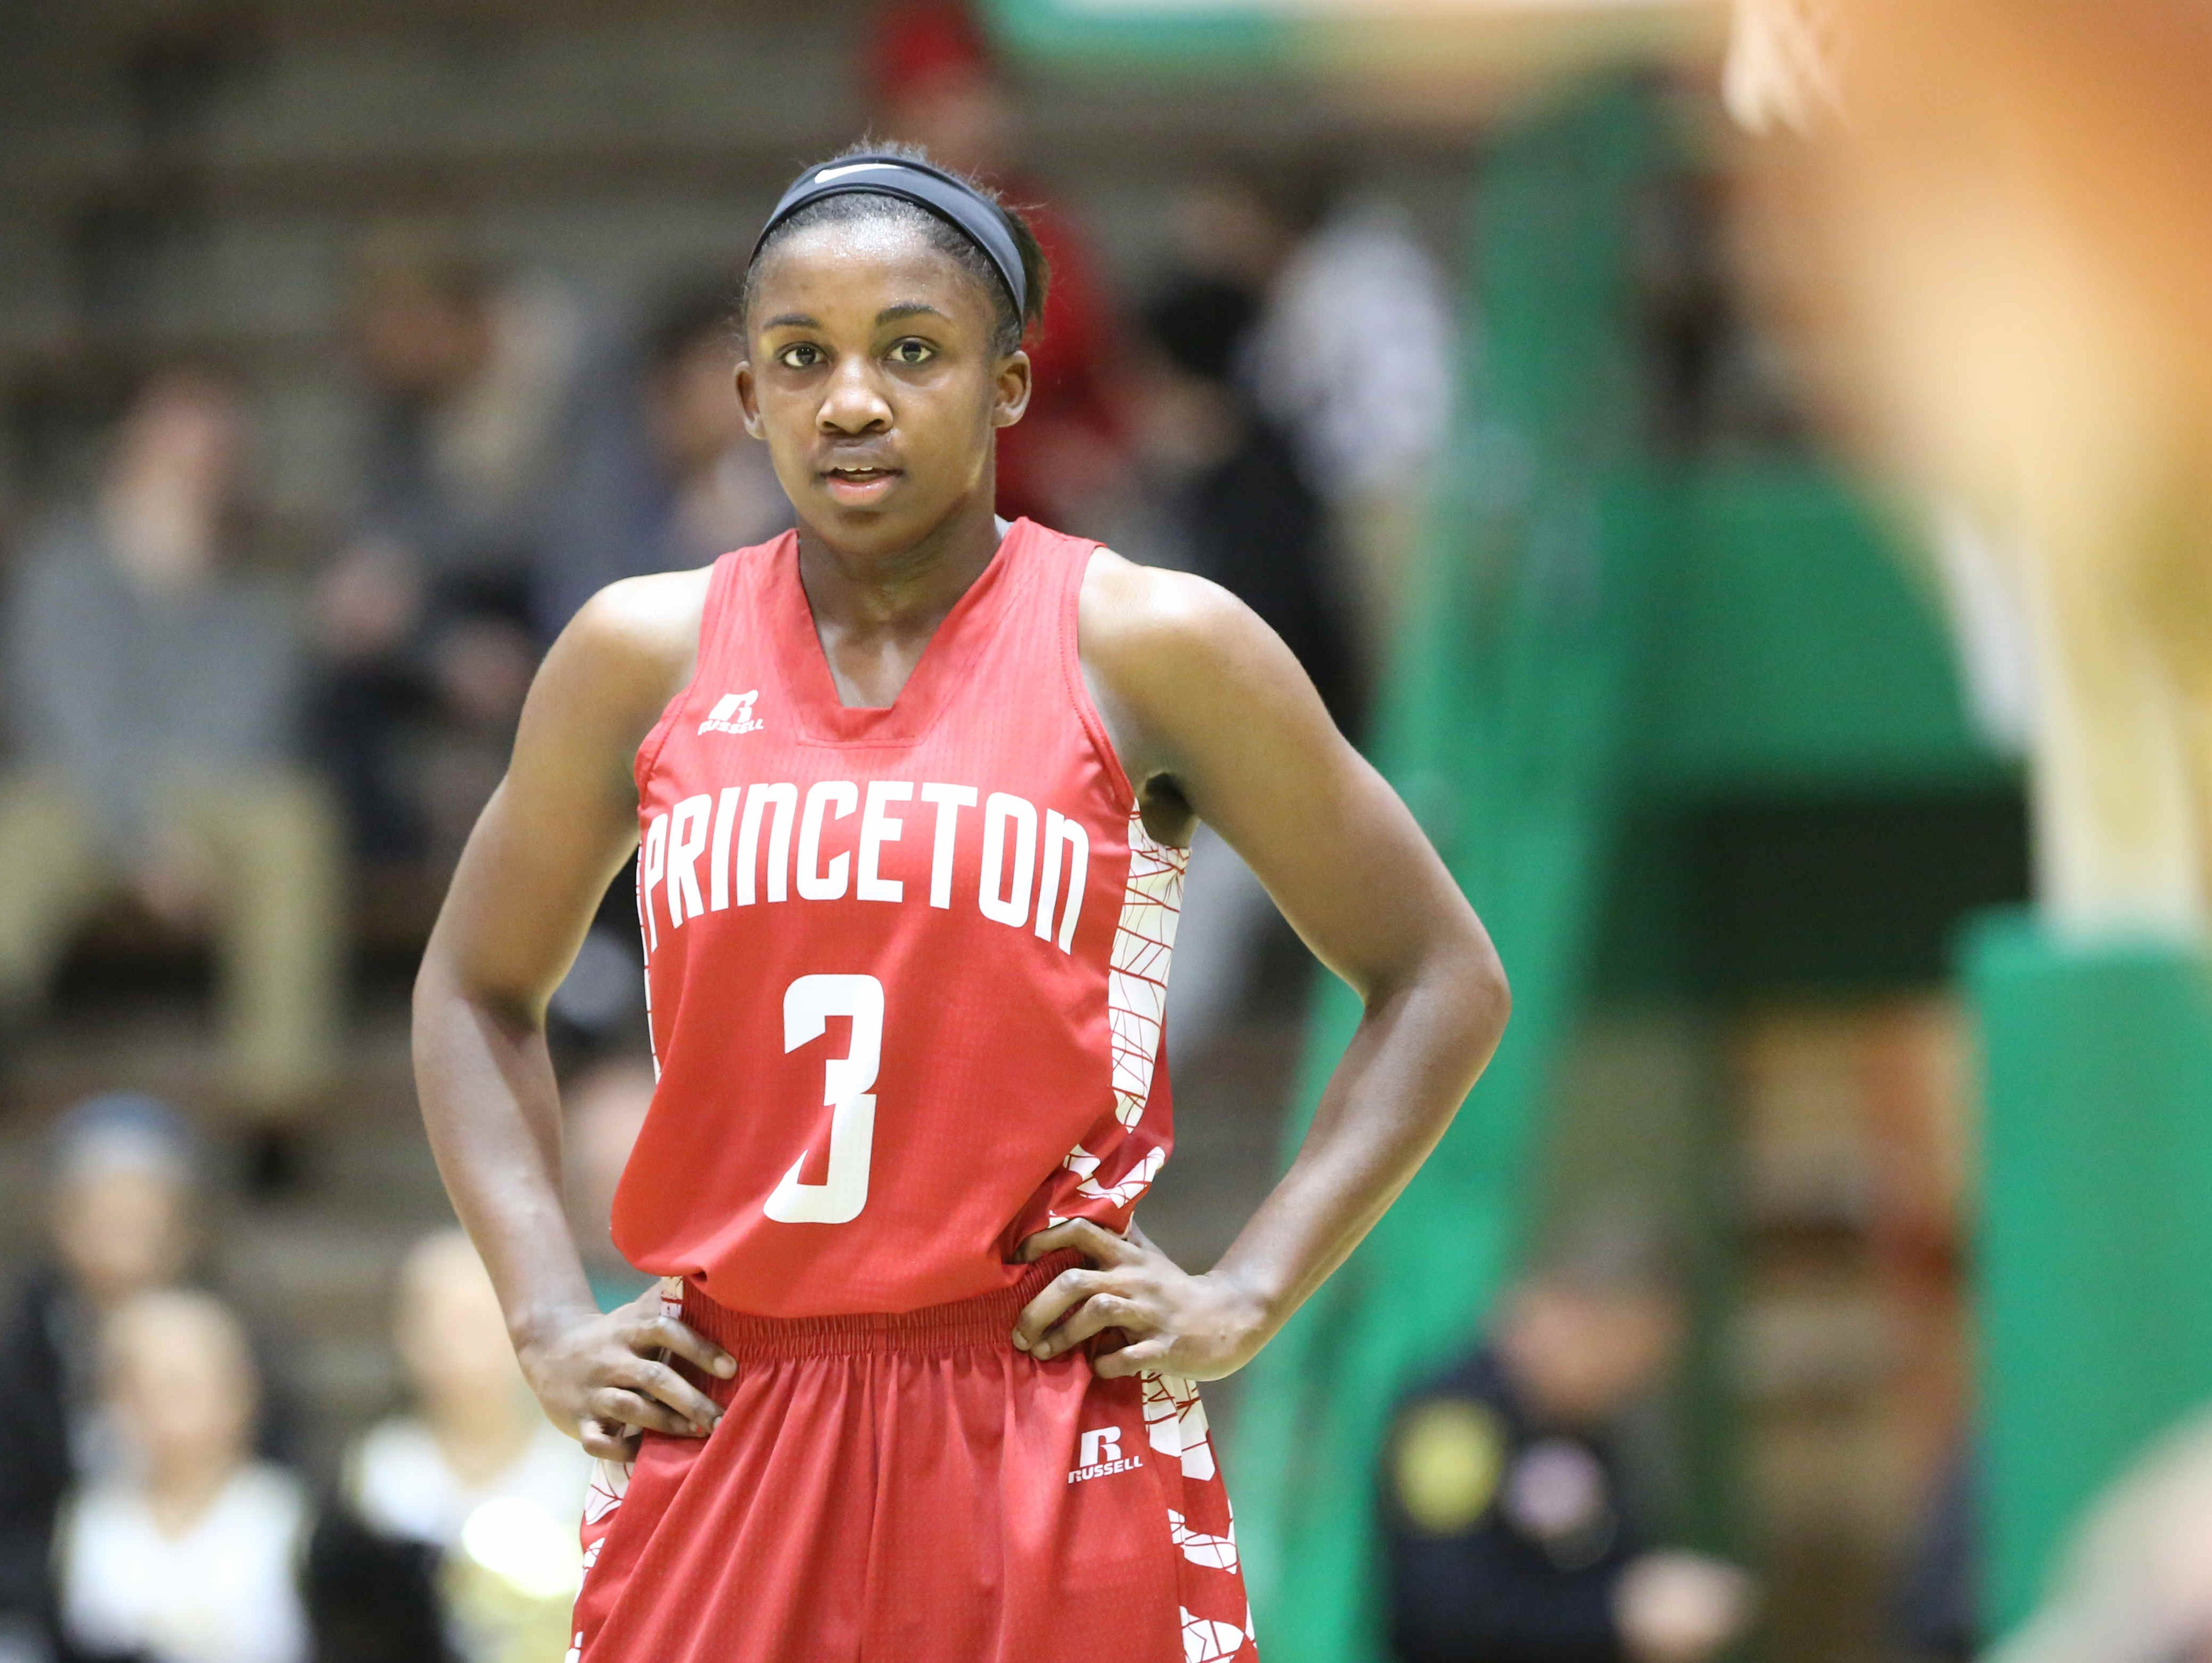 Princeton's Jackie Young watches a free throw during the High School Girls Hall of Fame Classic between Princeton and Lebanon, held at New Castle High School. Princeton was victorious, 87-63.